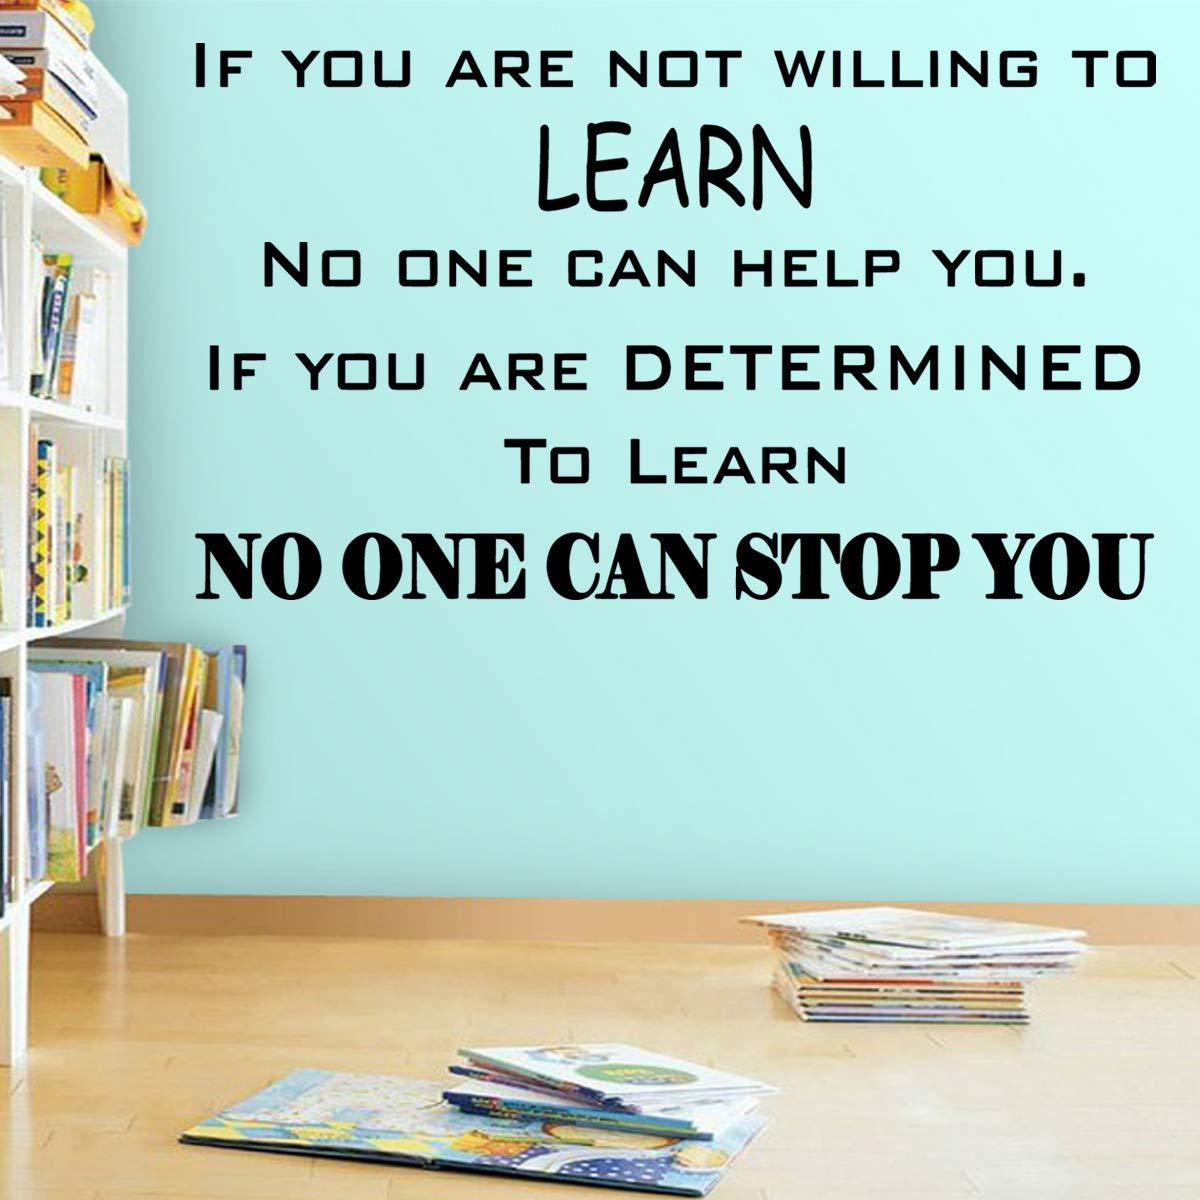 VWAQ If You are Not Willing to Learn No One Can Help You Classroom Quotes Wall Decal - VWAQ Vinyl Wall Art Quotes and Prints